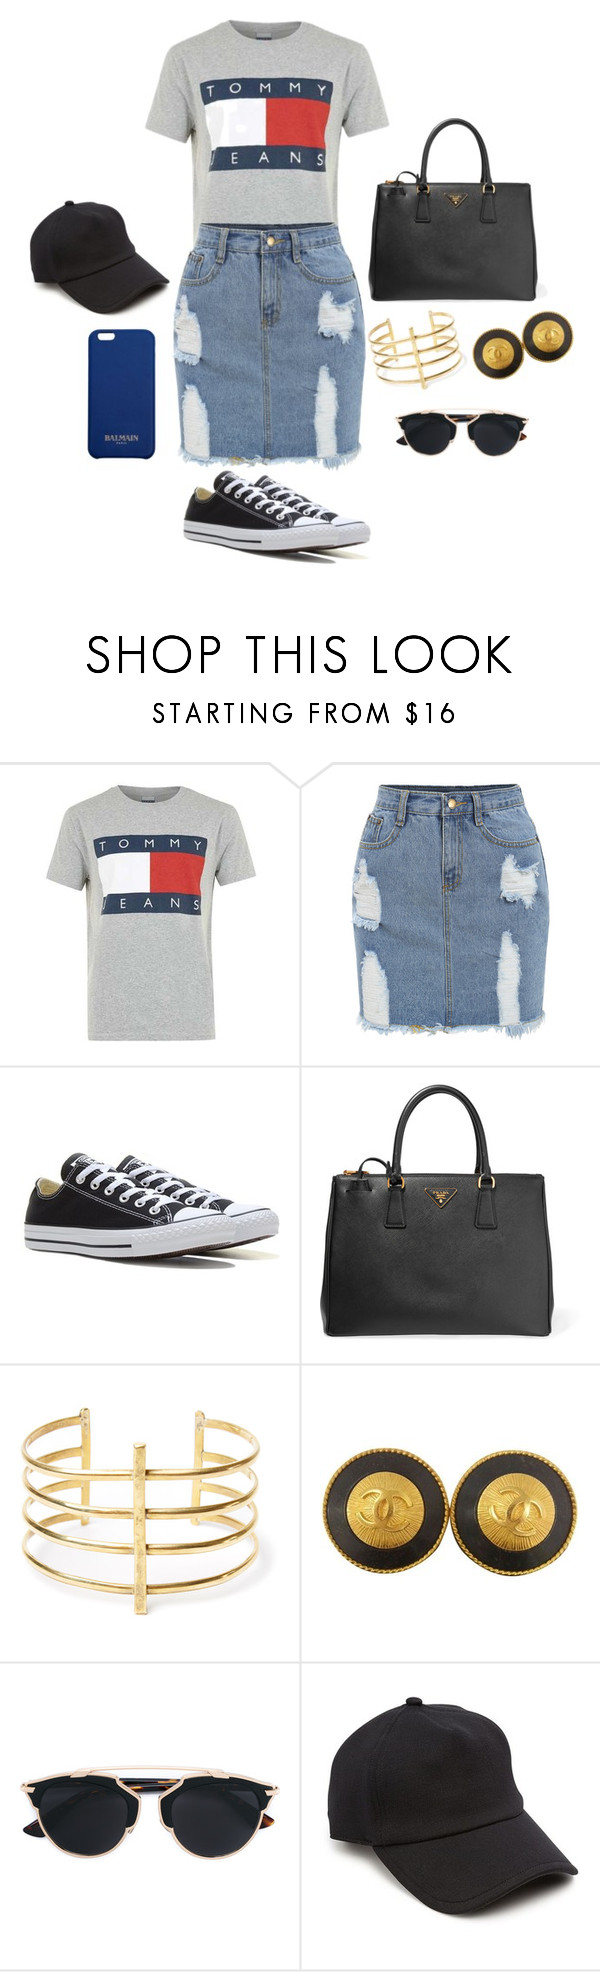 """""""casual day"""" by georgiagleeson-14 ❤ liked on Polyvore featuring Tommy Hilfiger, Converse, Prada, BauXo, Chanel, Christian Dior, rag & bone and Balmain"""